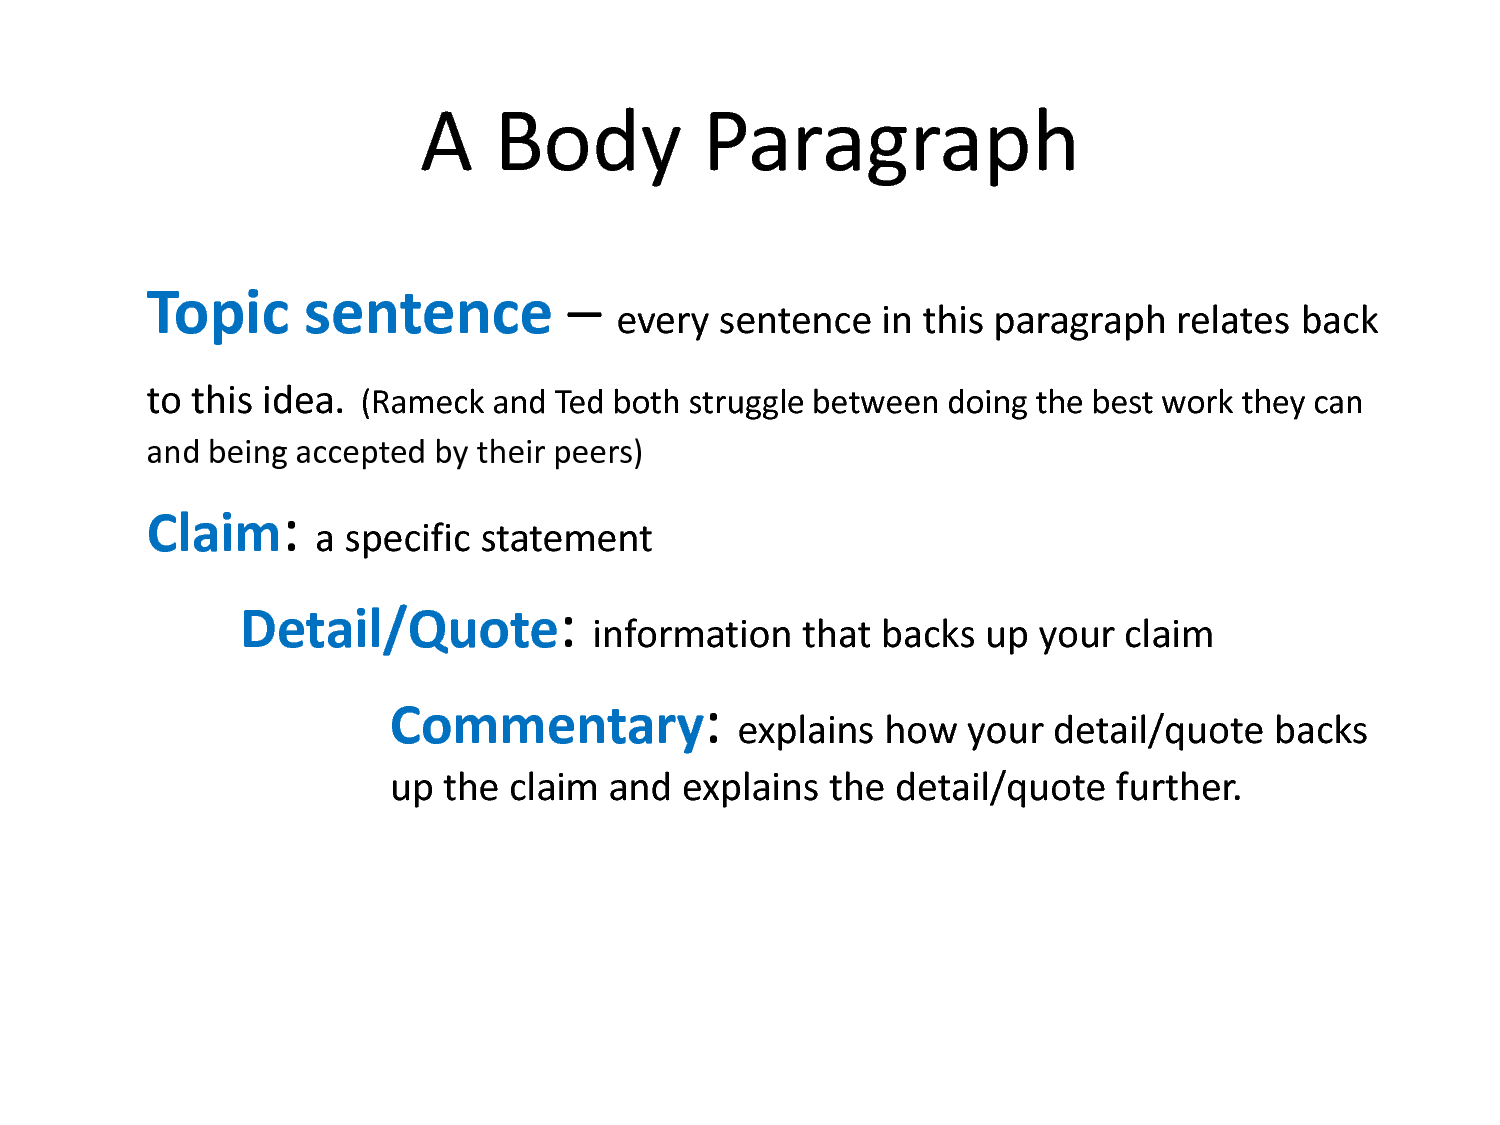 a body paragraph is any paragraph The term body paragraph refers to any how that follows the introduction and comes before the conclusion the five-paragraph essay the majority of any essay consists of multiple body paragraphs, and it is in these paragraphs where the main information is presented the longer an essay is, the more body paragraphs there will be.